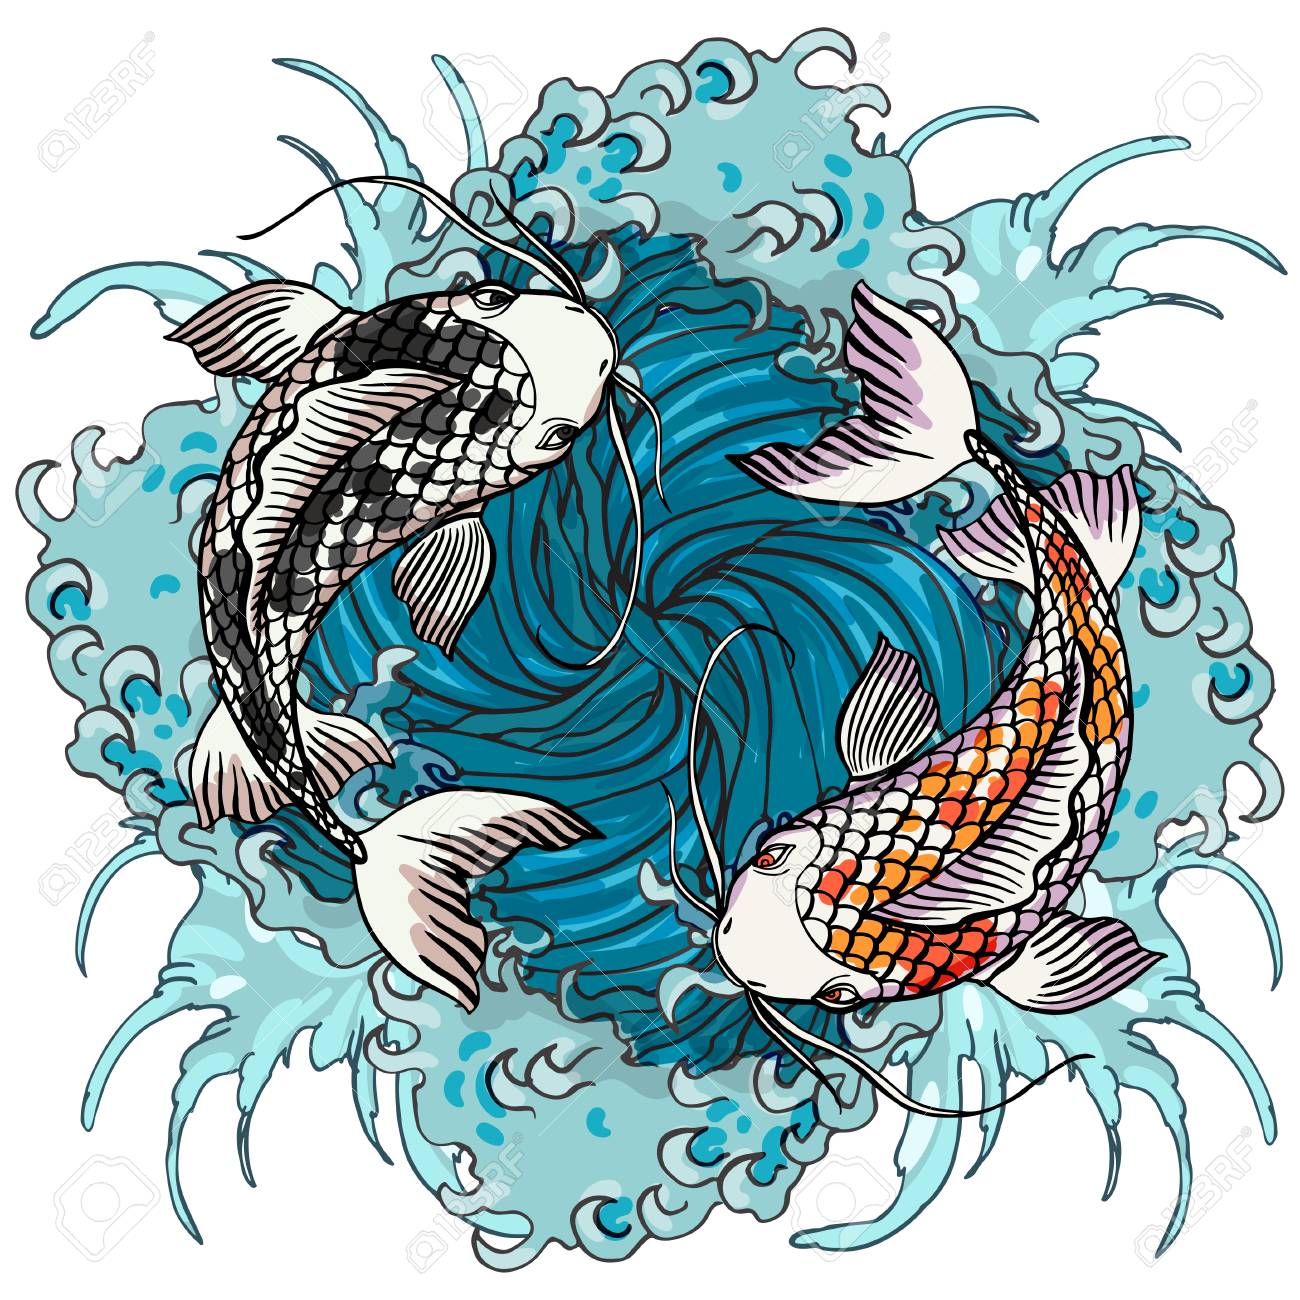 Realistic detailed hand drawn illustration of two koi carps swimming on background of water waves. Colorful graphic tattoo style image symbolising yin yang concept. T-shirt print. - 98867131